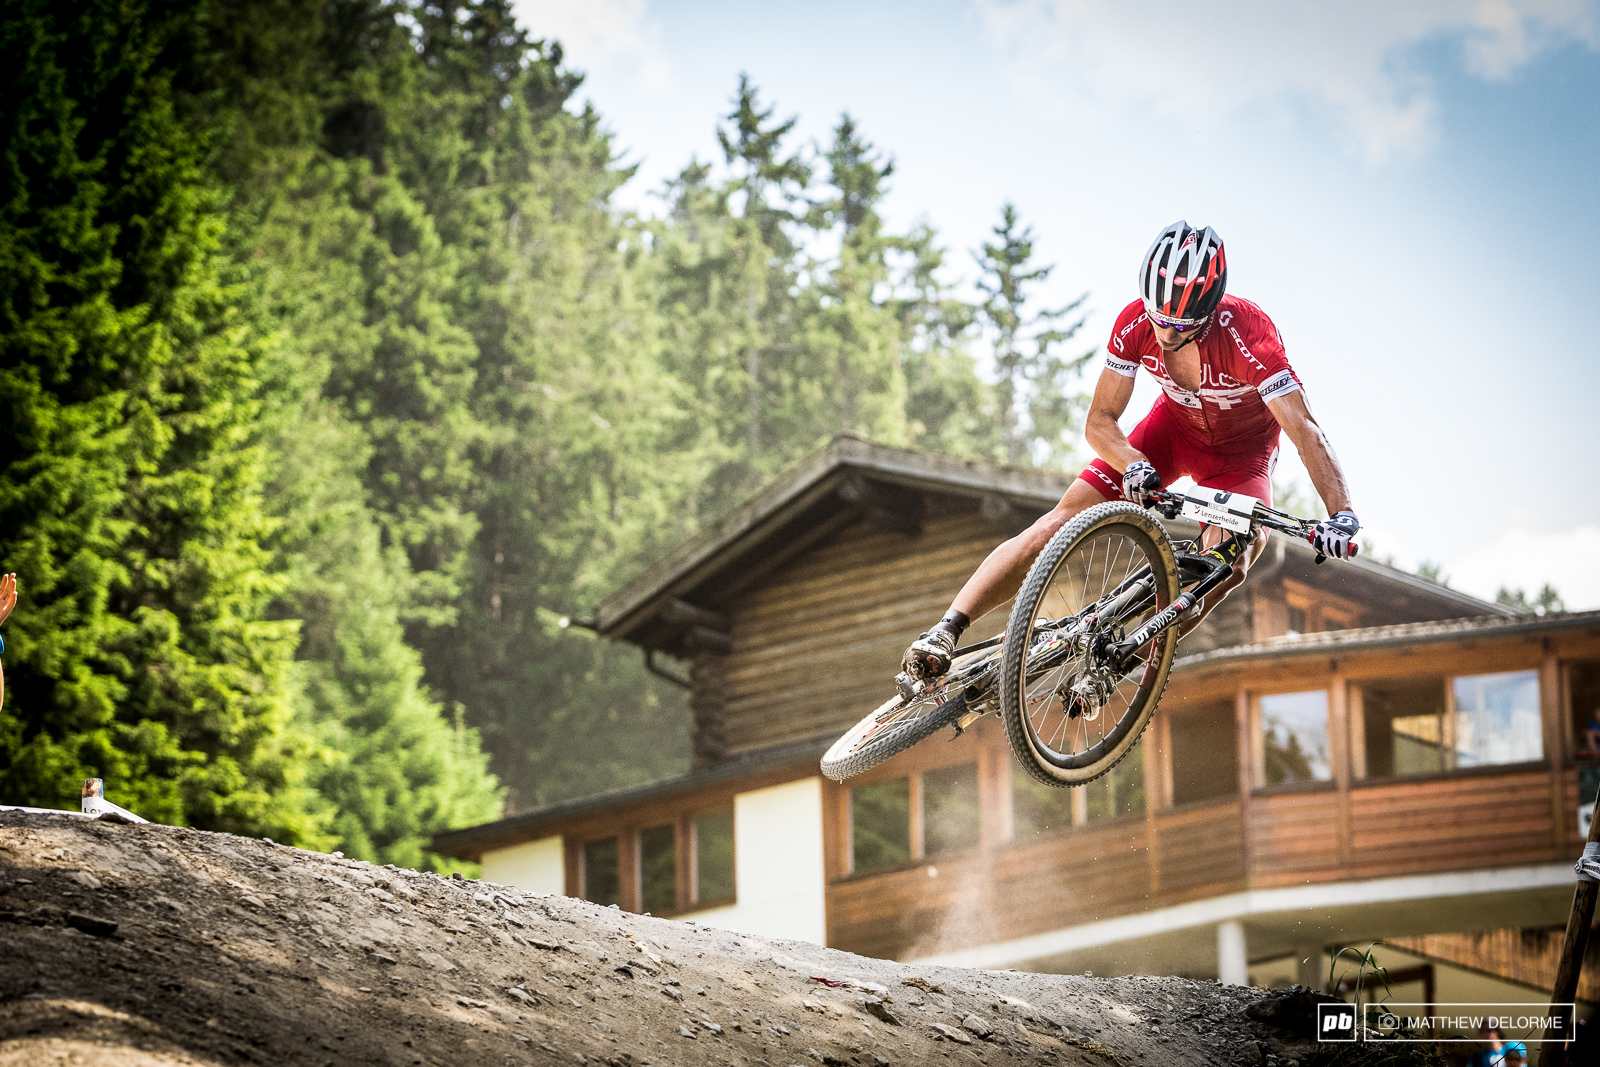 Nino Schurter may not have won today be he sure did show some style.